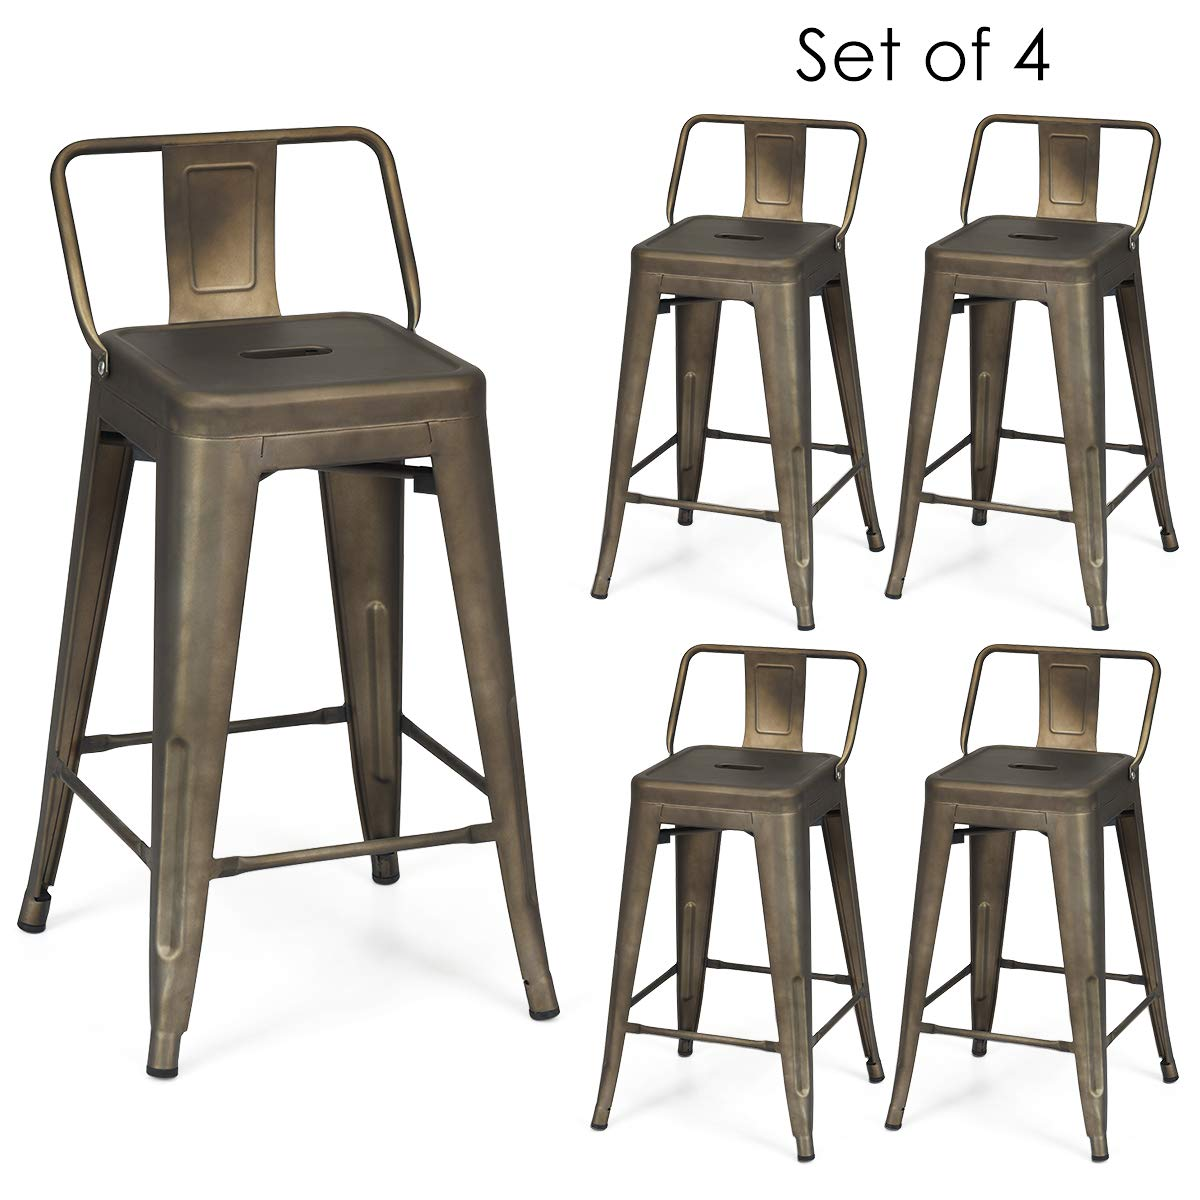 COSTWAY Metal Bar stools Set of 4, with Removable Back, Cafe Side Chairs with Rubber Feet, Stylish and Modern Chairs, for Kitchen, Dining Rooms, and Side Bar (Gun, 24'') by COSTWAY